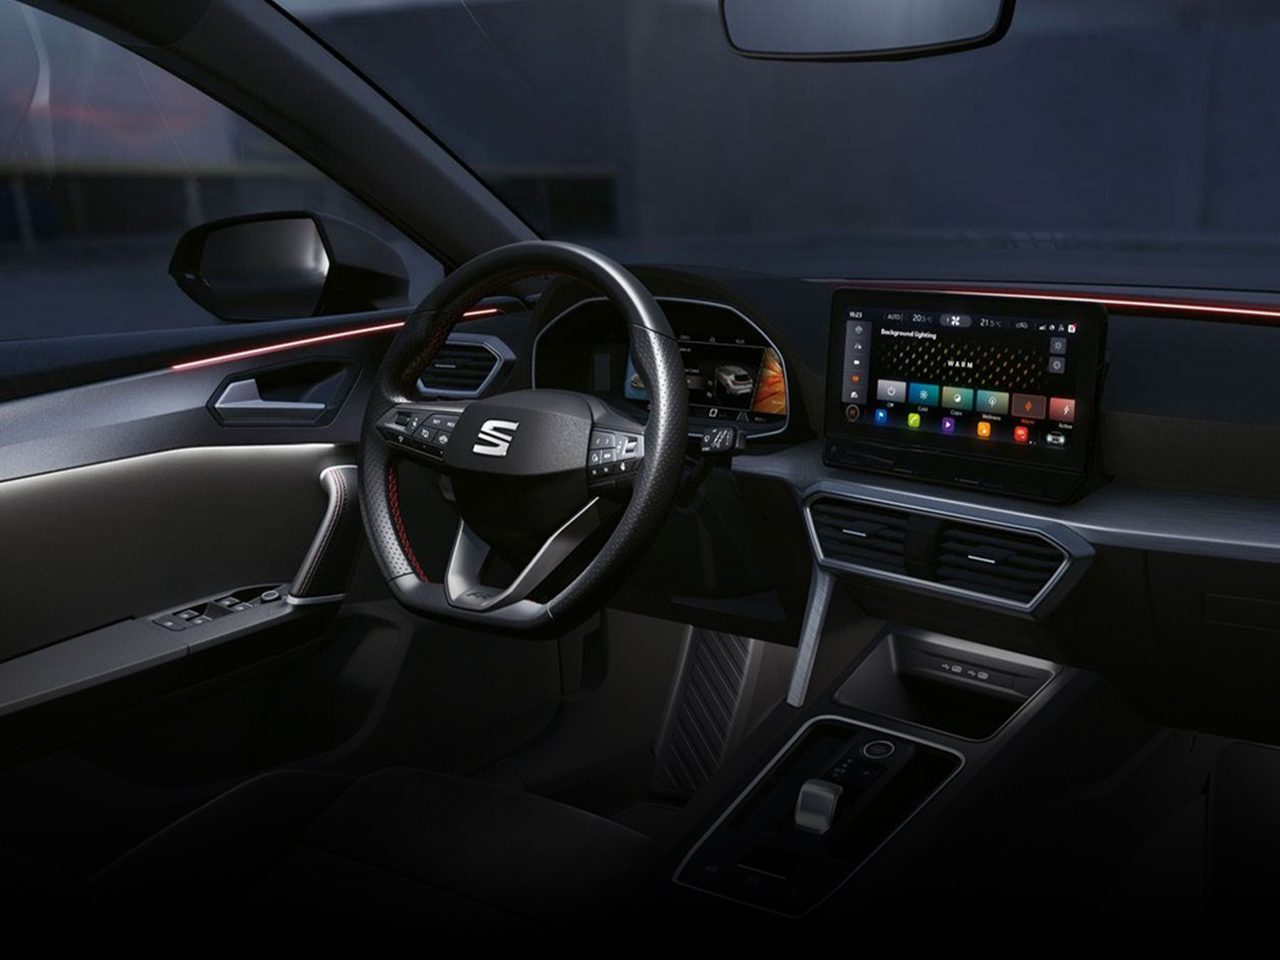 Ambient lighting system